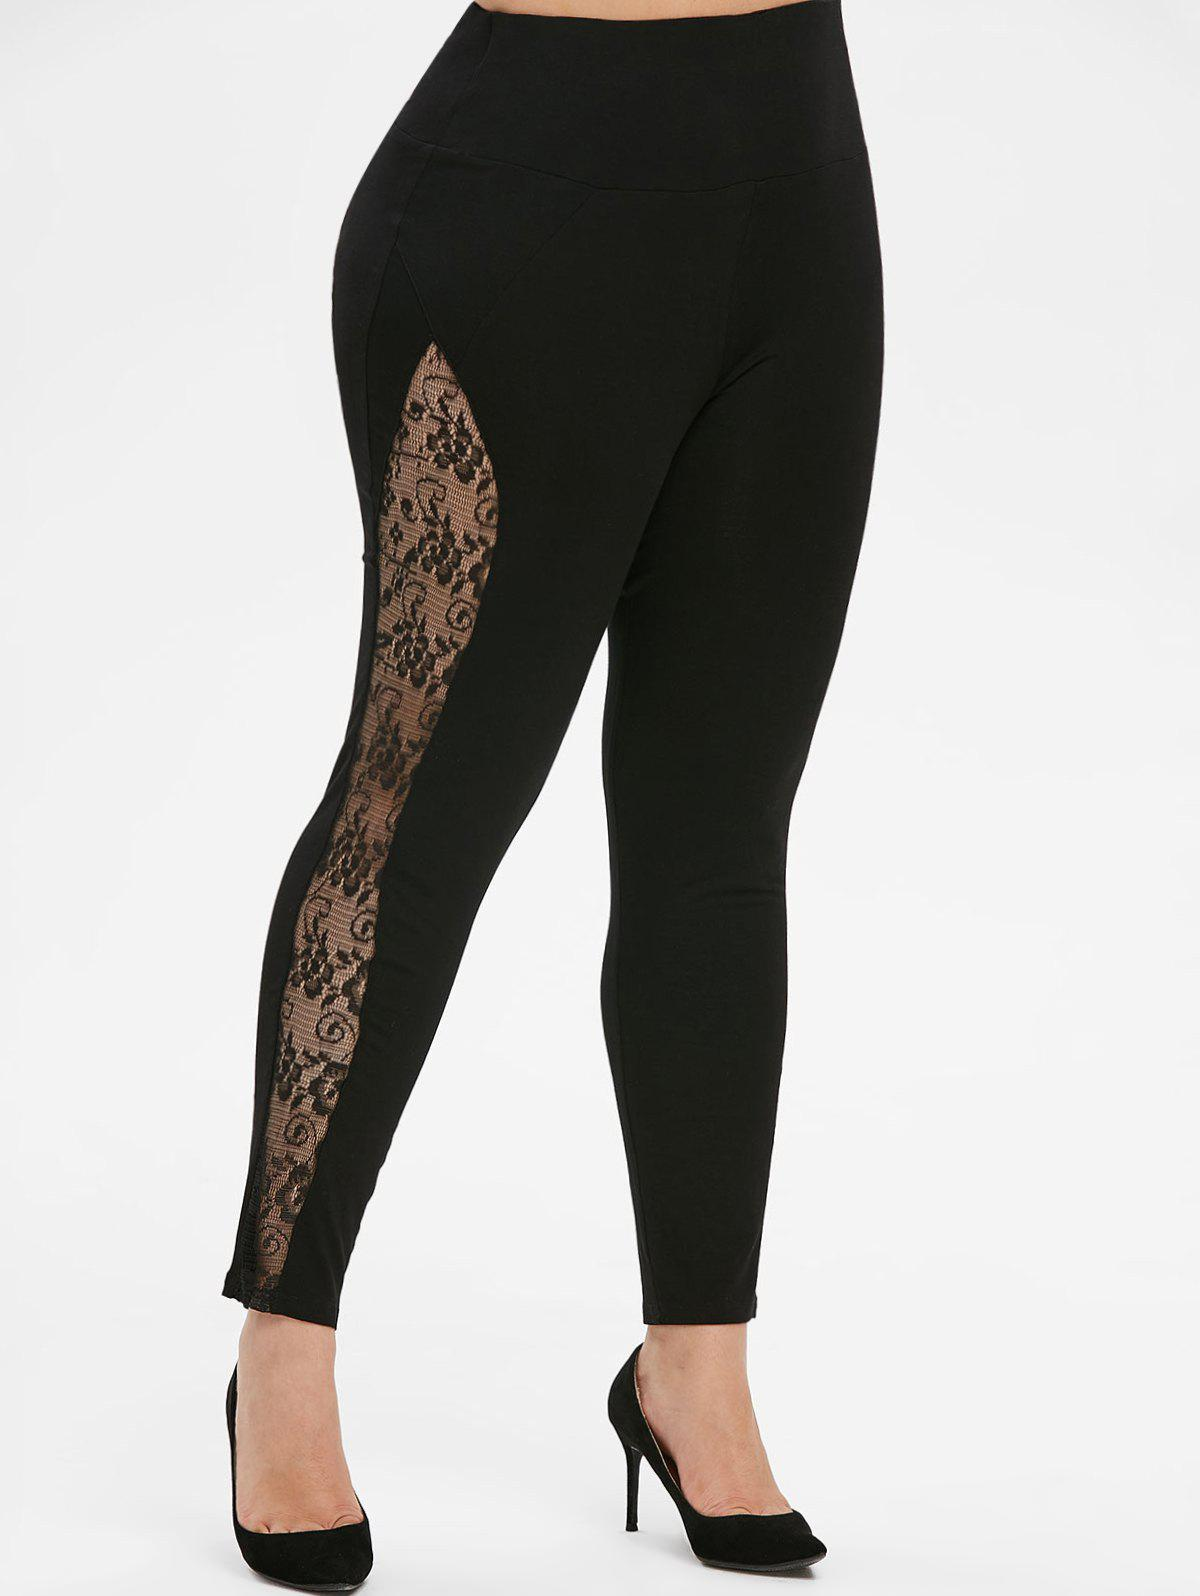 Pull On Lace Panel High Waisted Plus Size Leggings - BLACK L